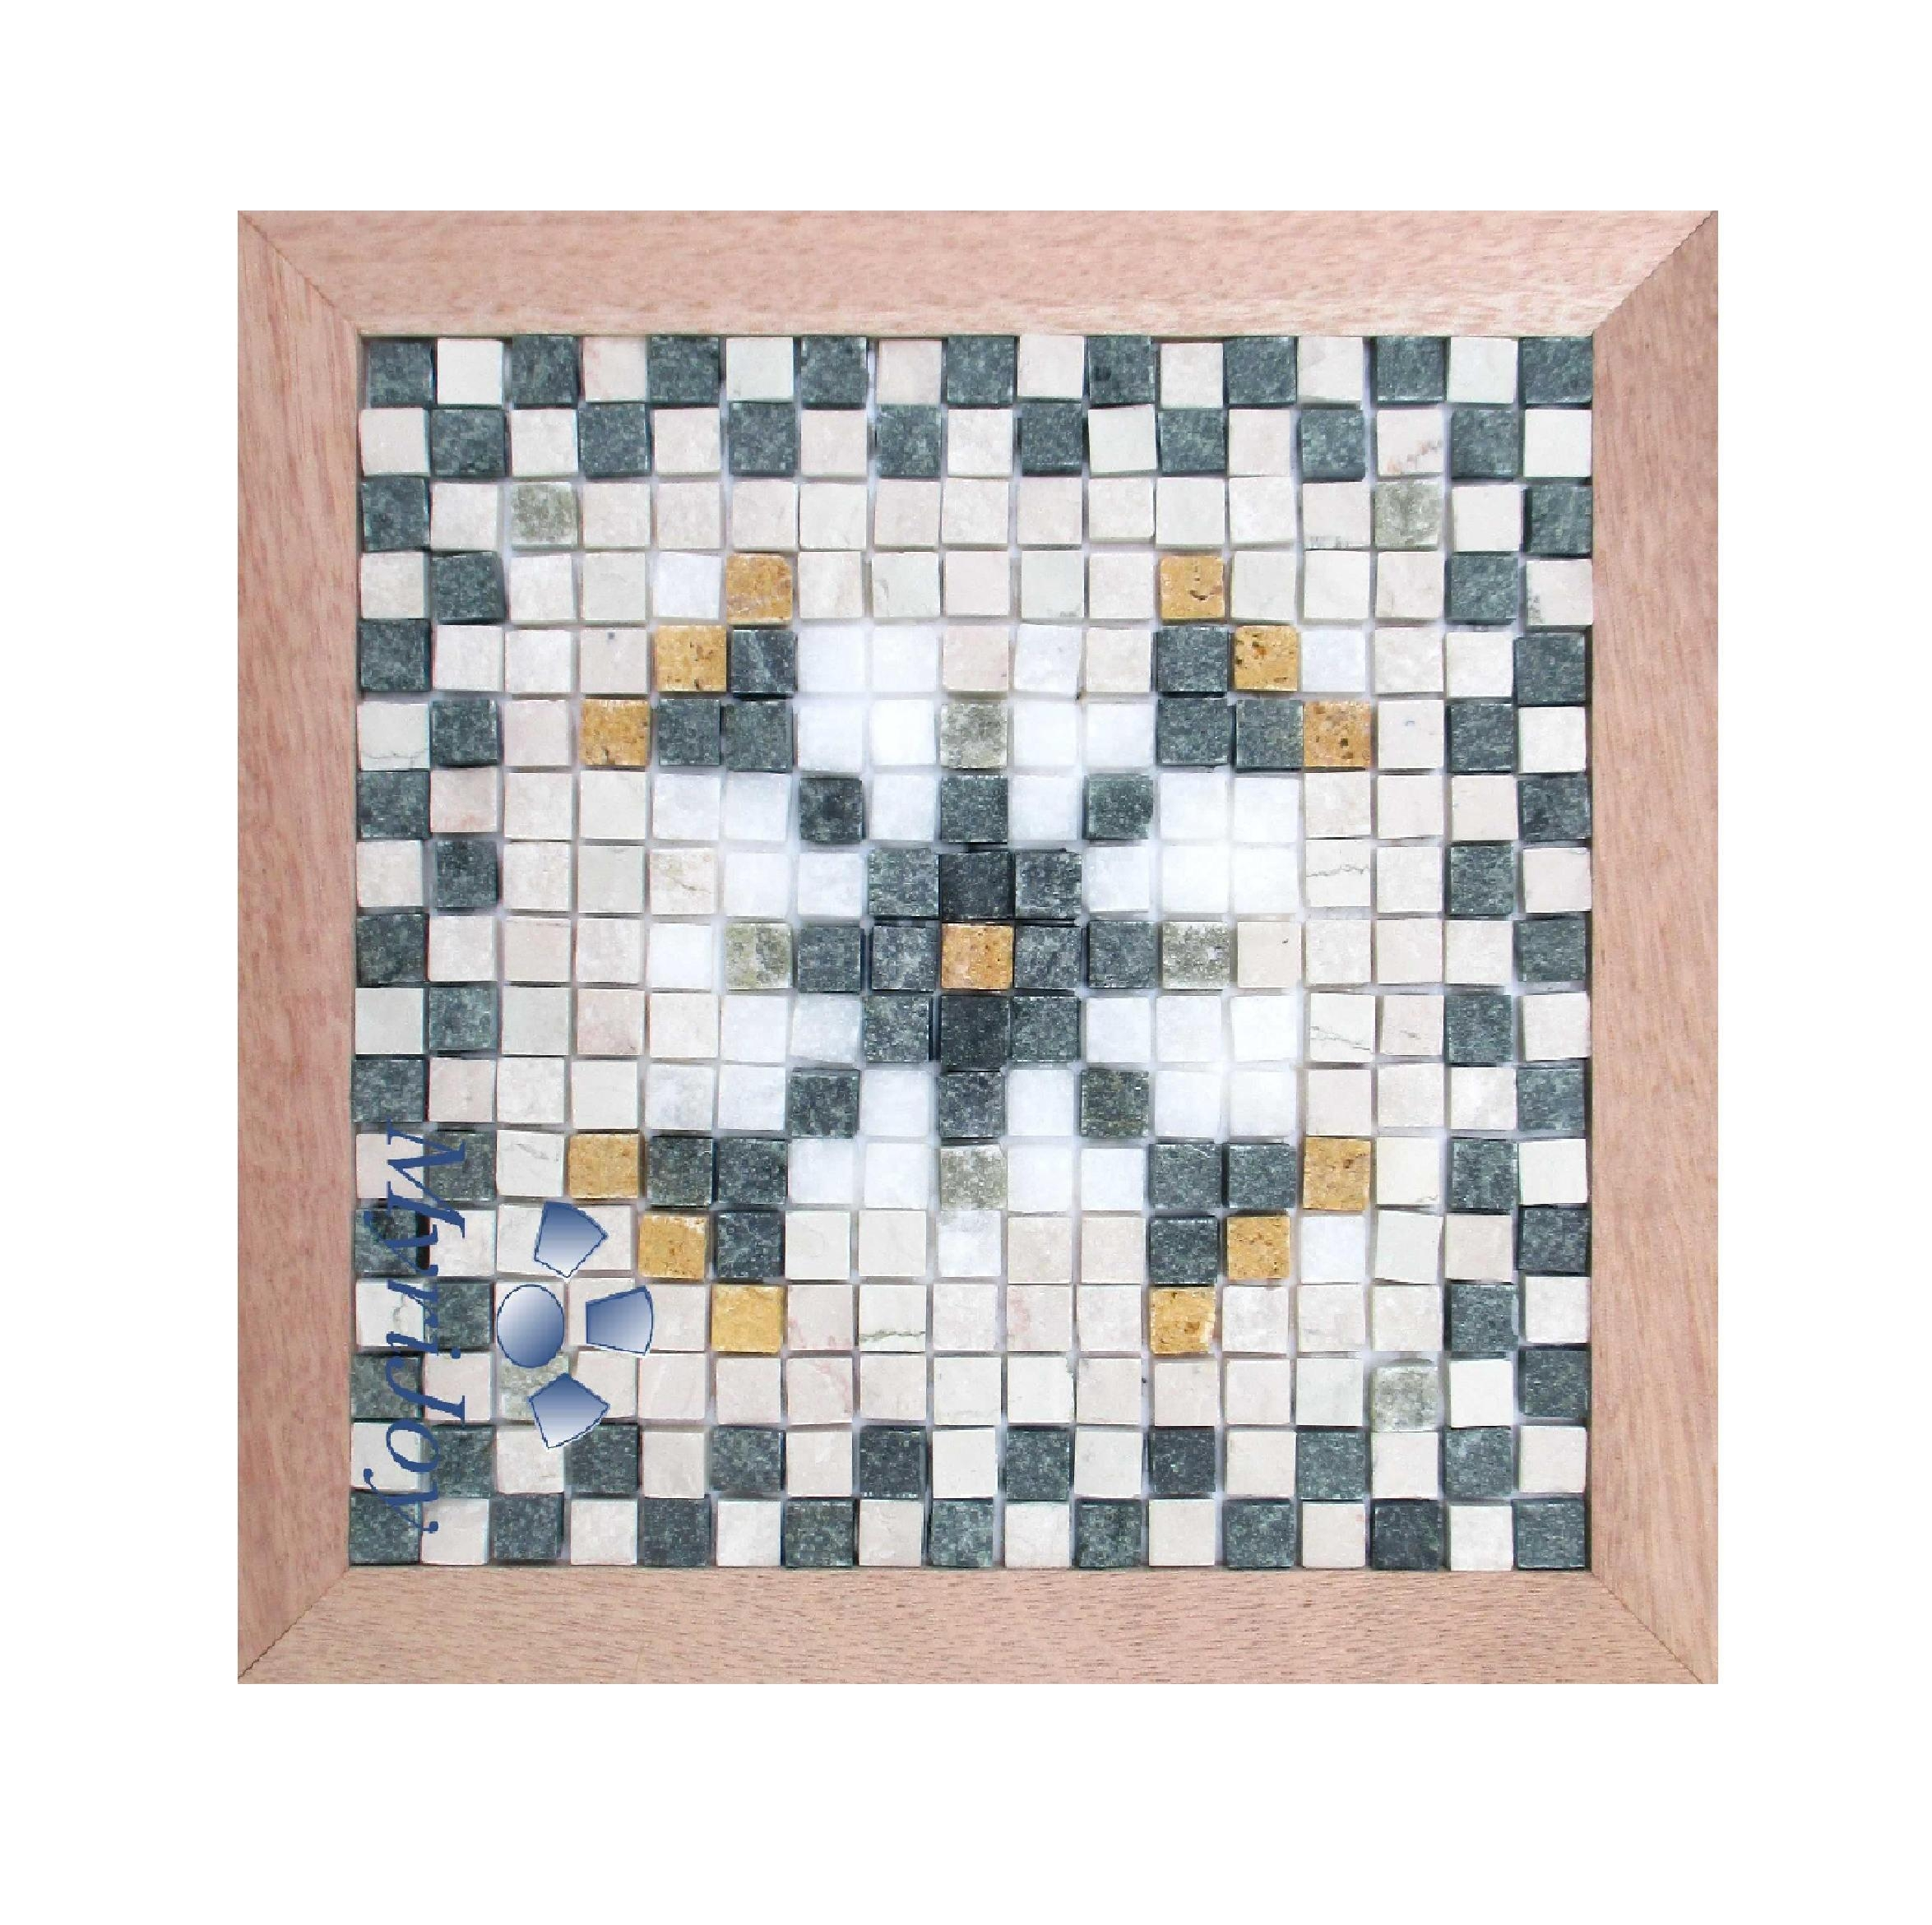 Diy Mosaic Craft Kit For Adults: Four Seasons Summer – Mosaic Tile With Regard To Mosaic Art Kits For Adults (Image 11 of 20)